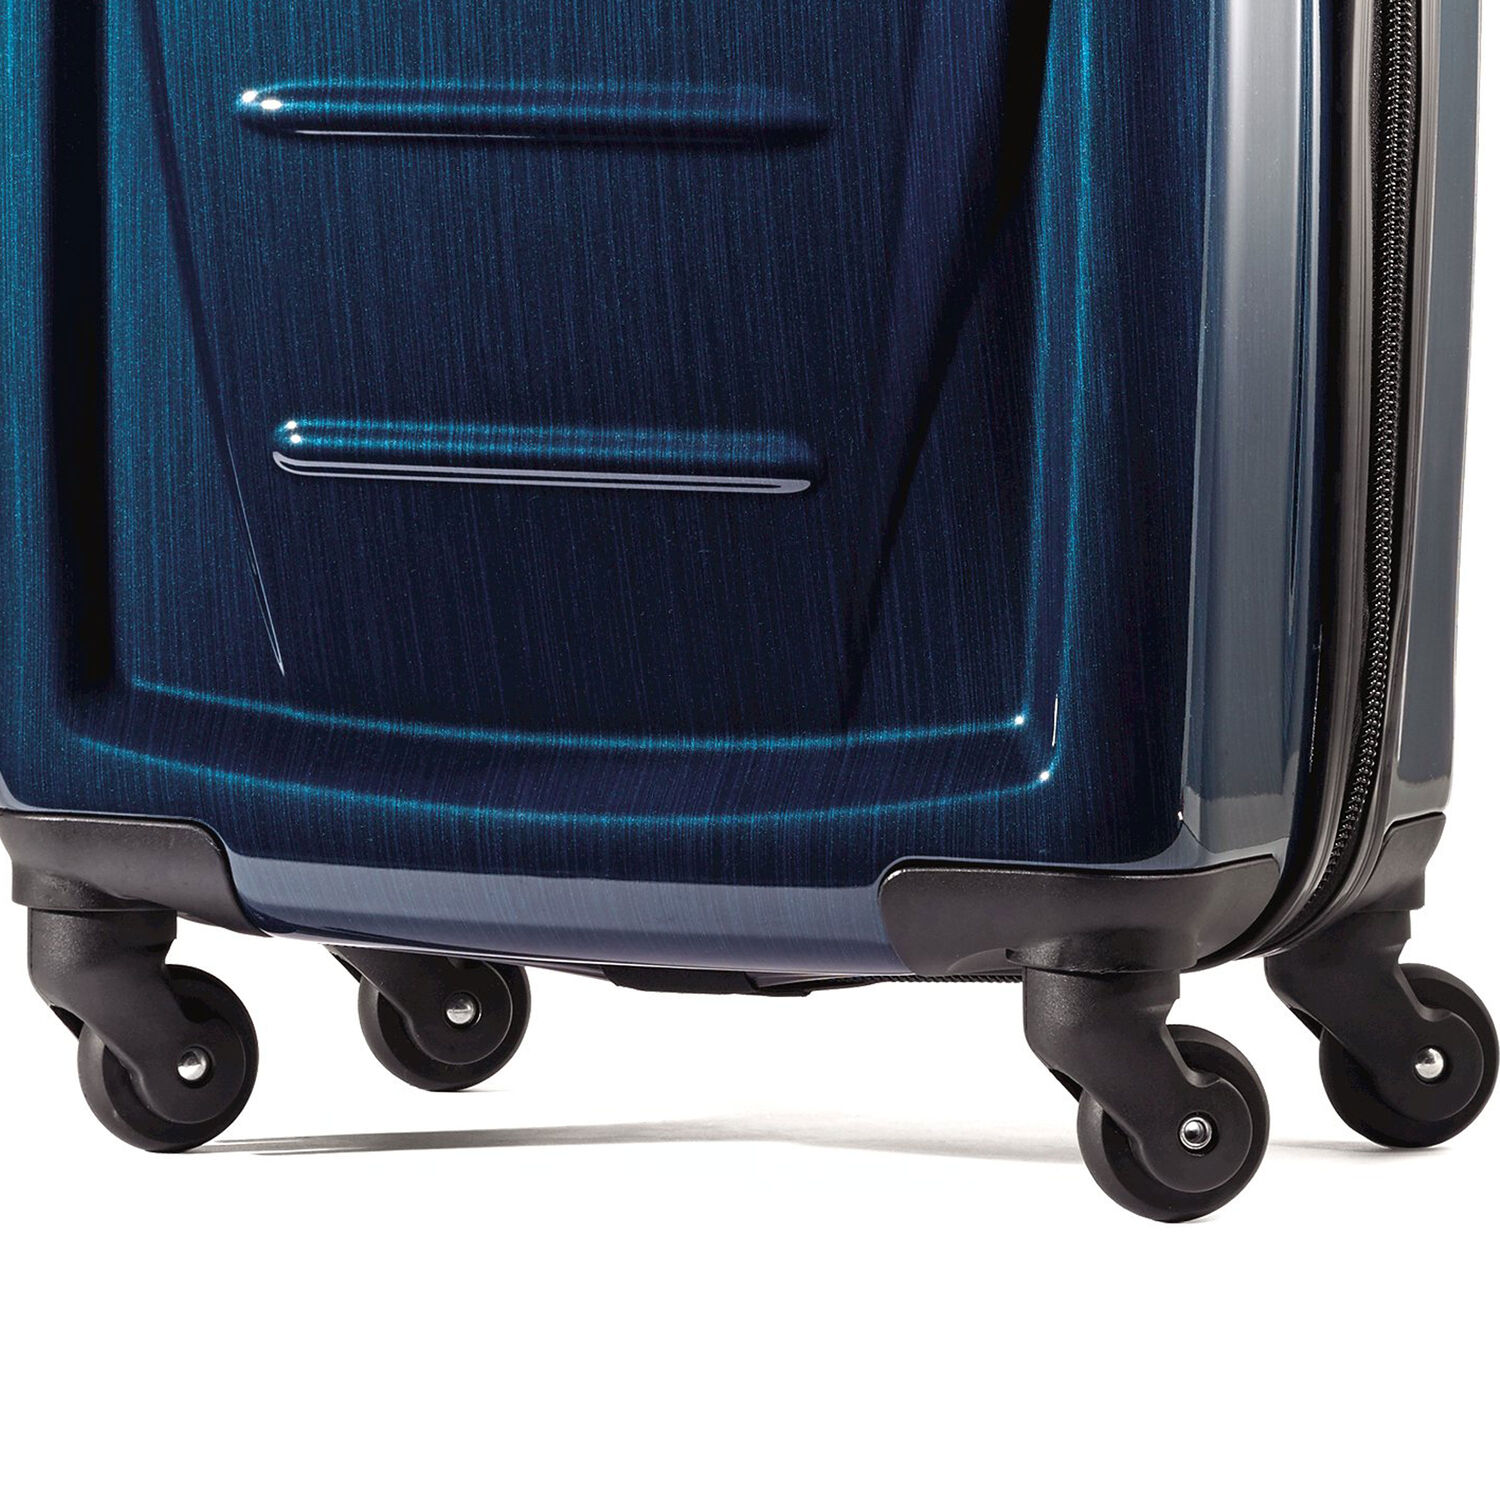 8d656ce62f Samsonite Winfield 2 Fashion 20 quot  Spinner in the color Deep ...